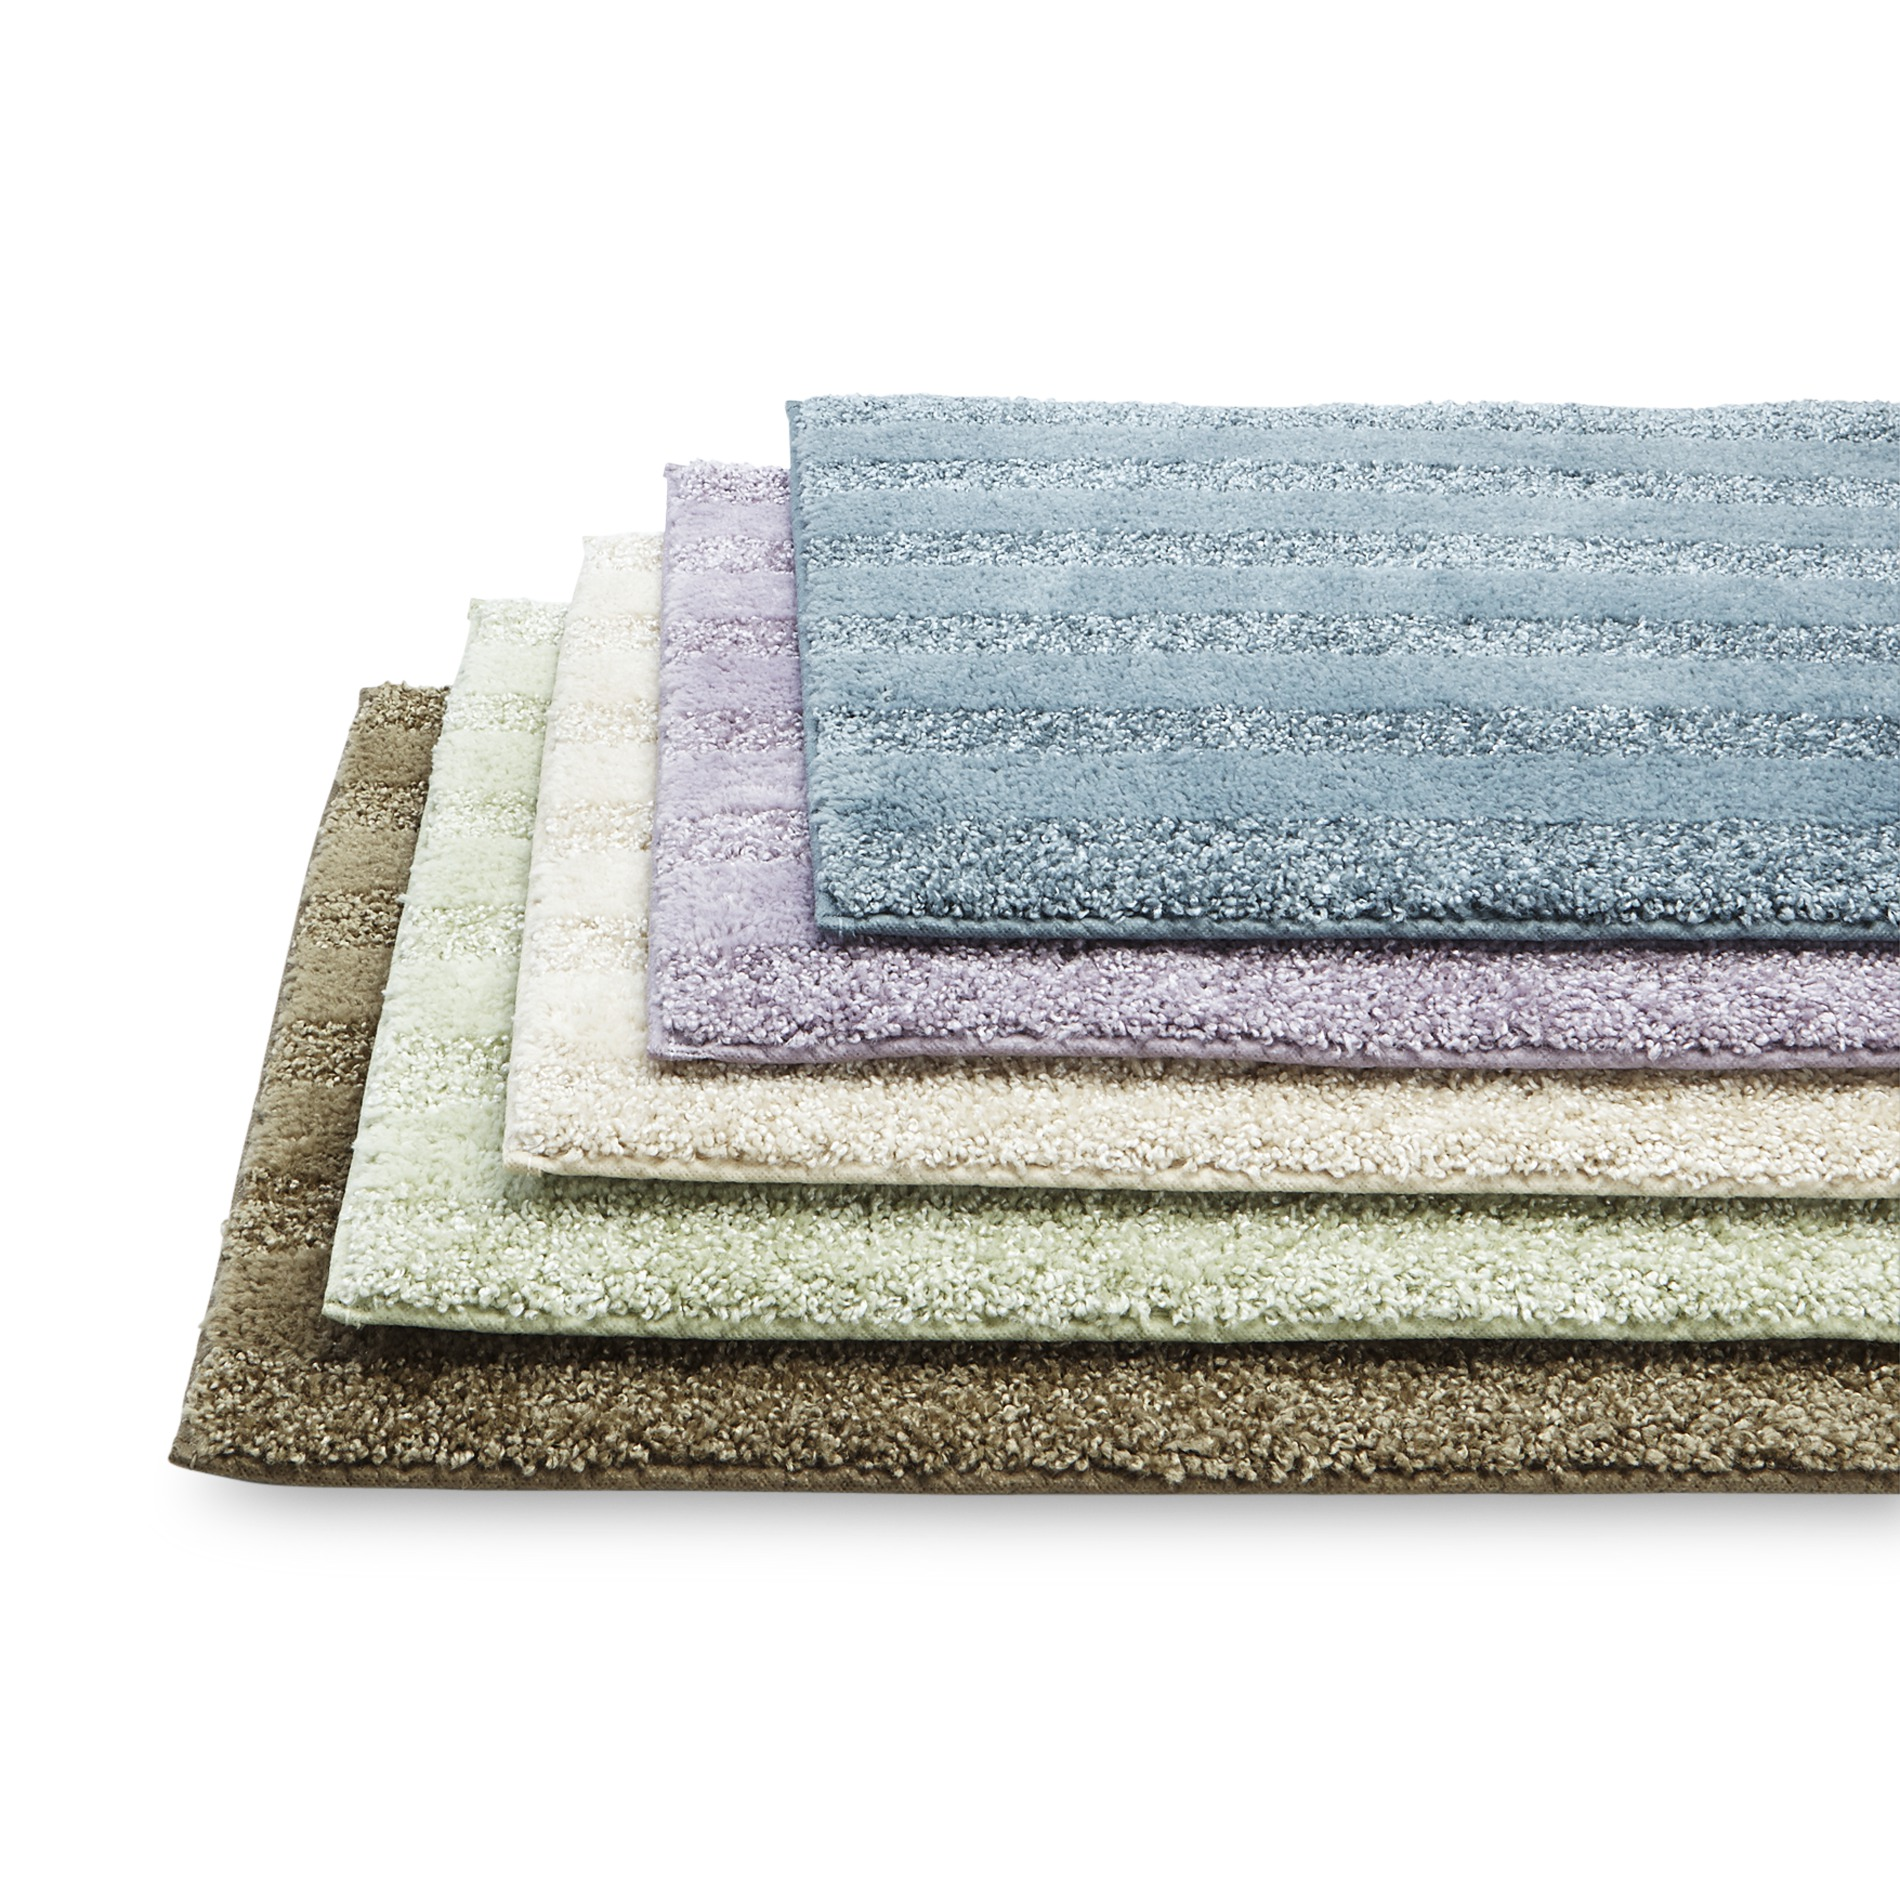 Aqua bathroom rugs - Jaclyn Smith Plush Bath Rug Universal Lid Or Contour Rug Striped Home Bed Bath Bath Bath Towels Rugs Bath Rugs Mats